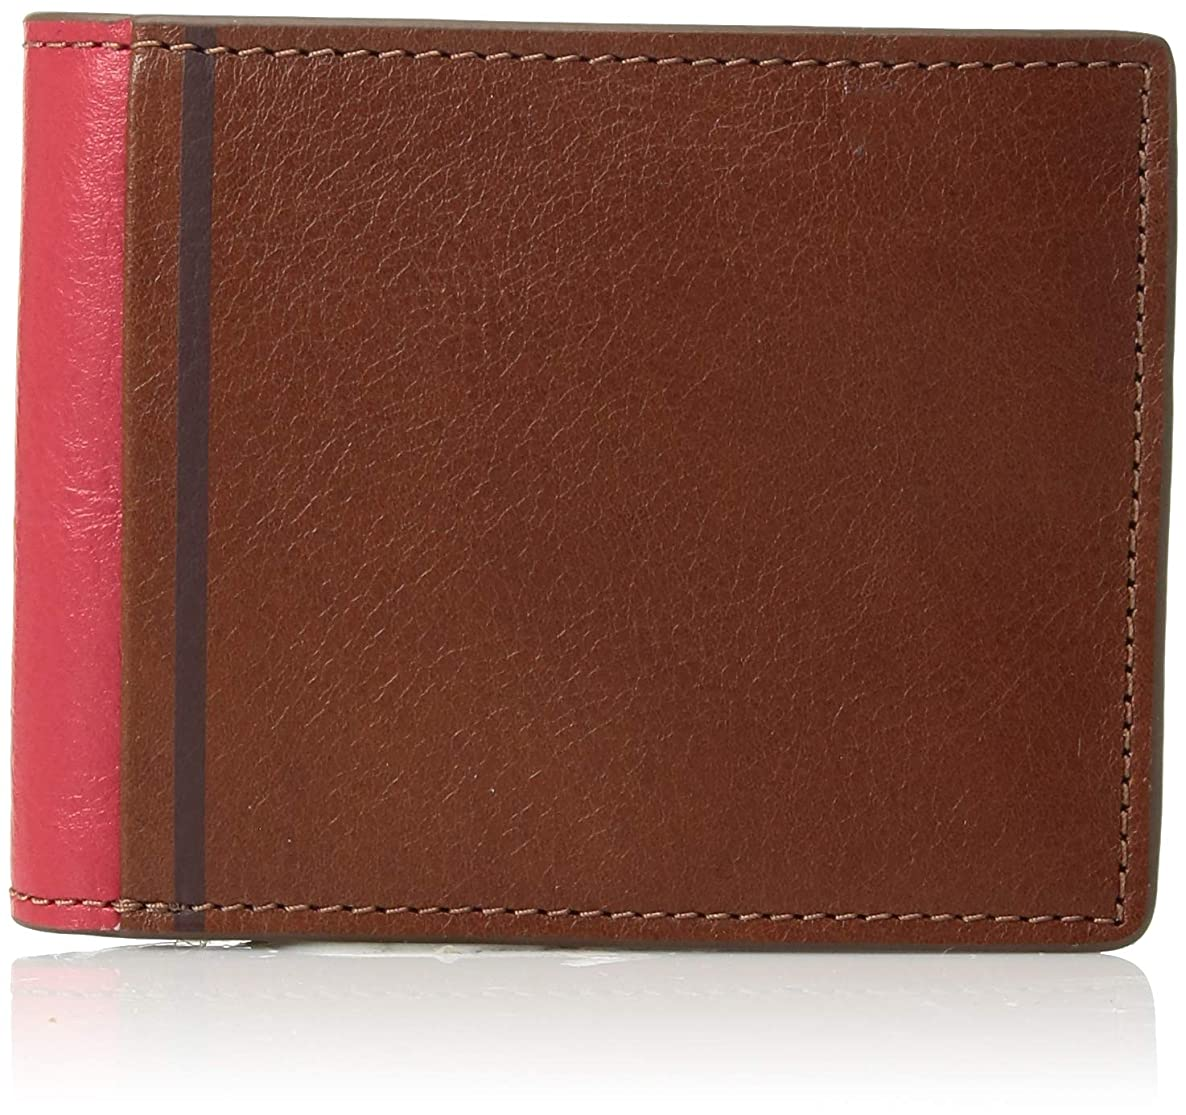 Fossil Men's Raymond Leather Sliding 2 in 1 Wallet